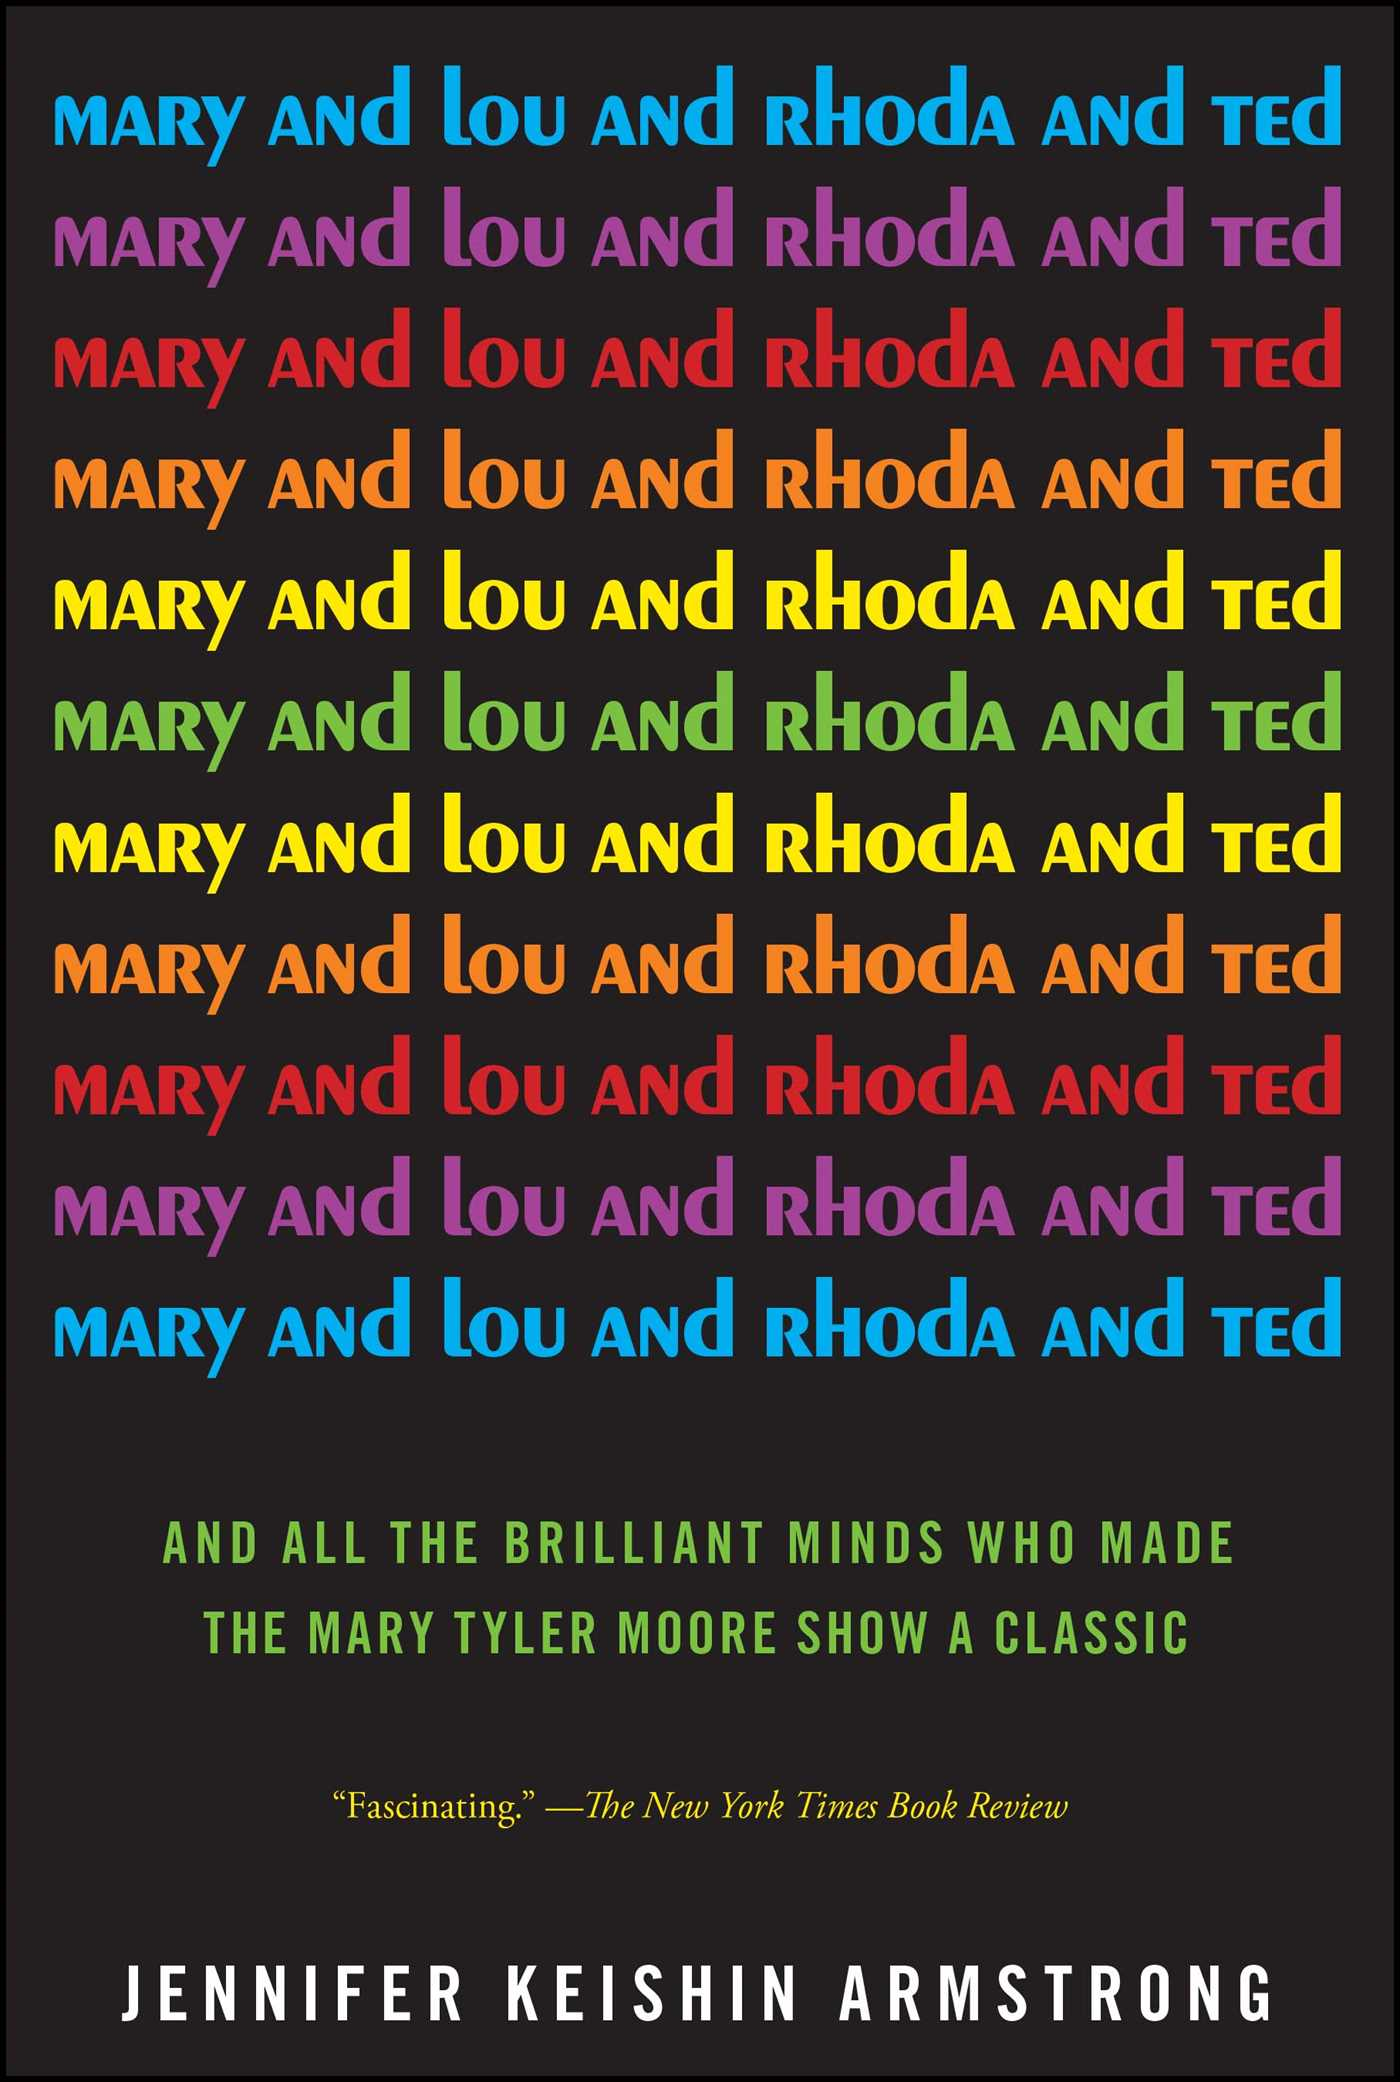 Mary and lou and rhoda and ted 9781451659221 hr